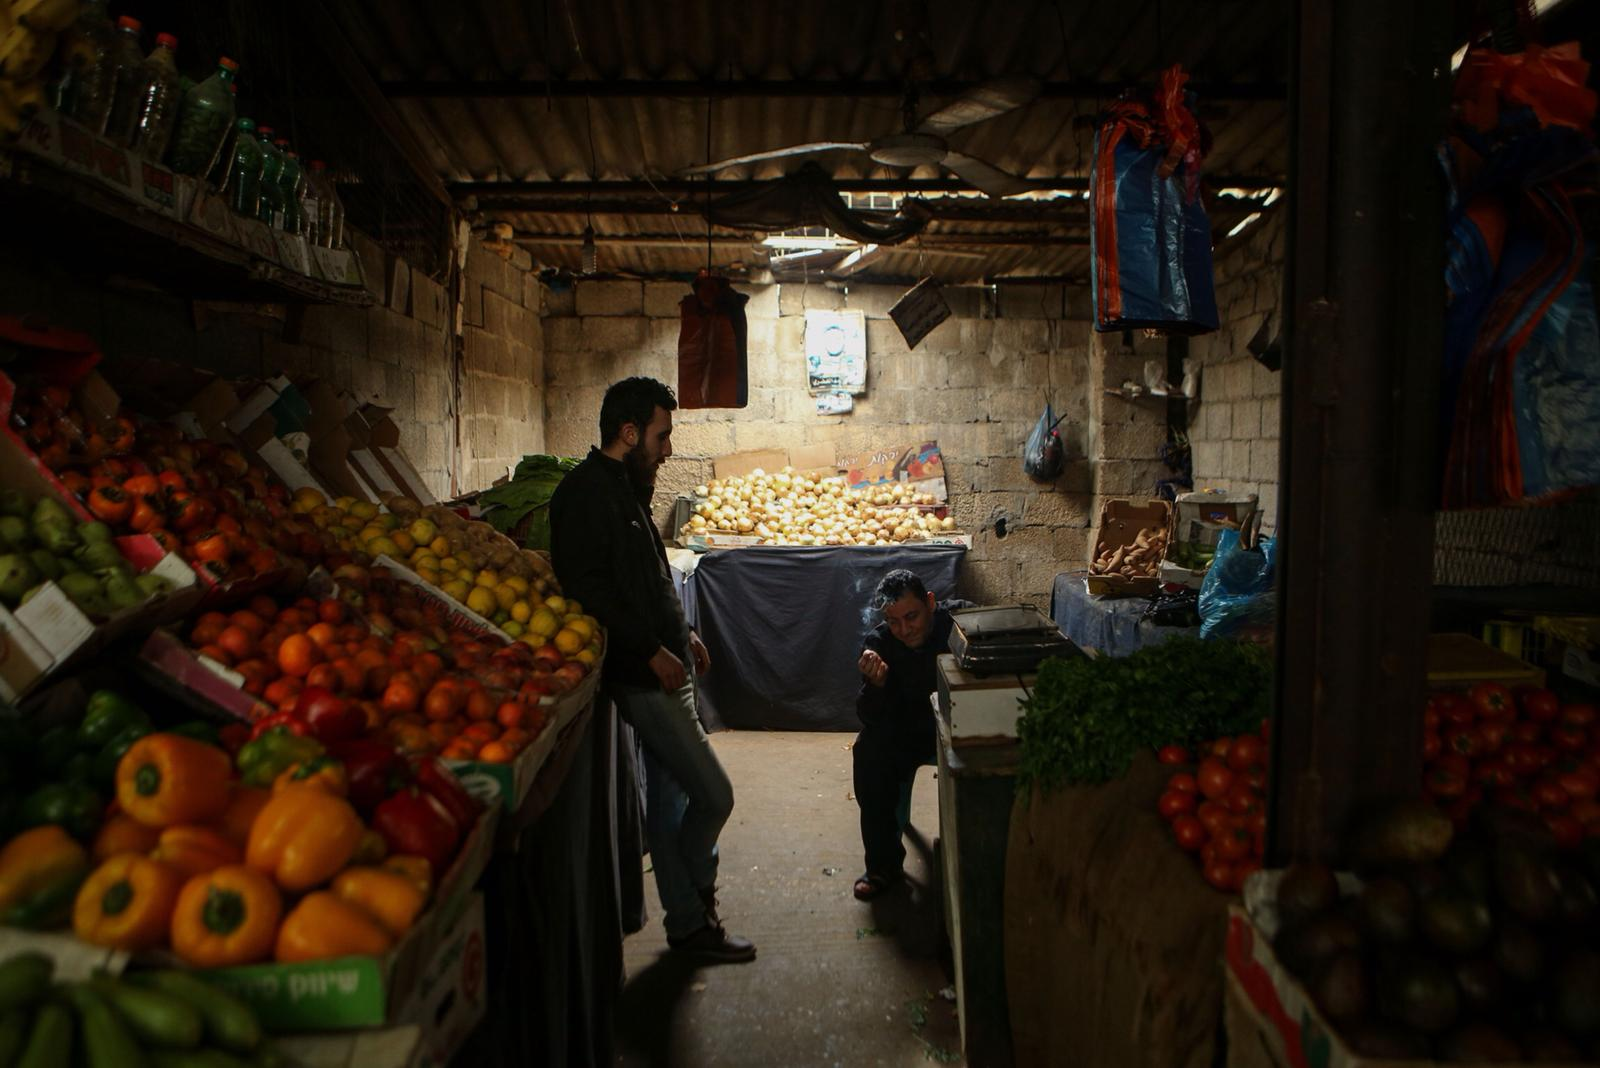 Palestinian businesses can only rely on light during the daylight hours (MEE/Mohammed al-Hajjar)